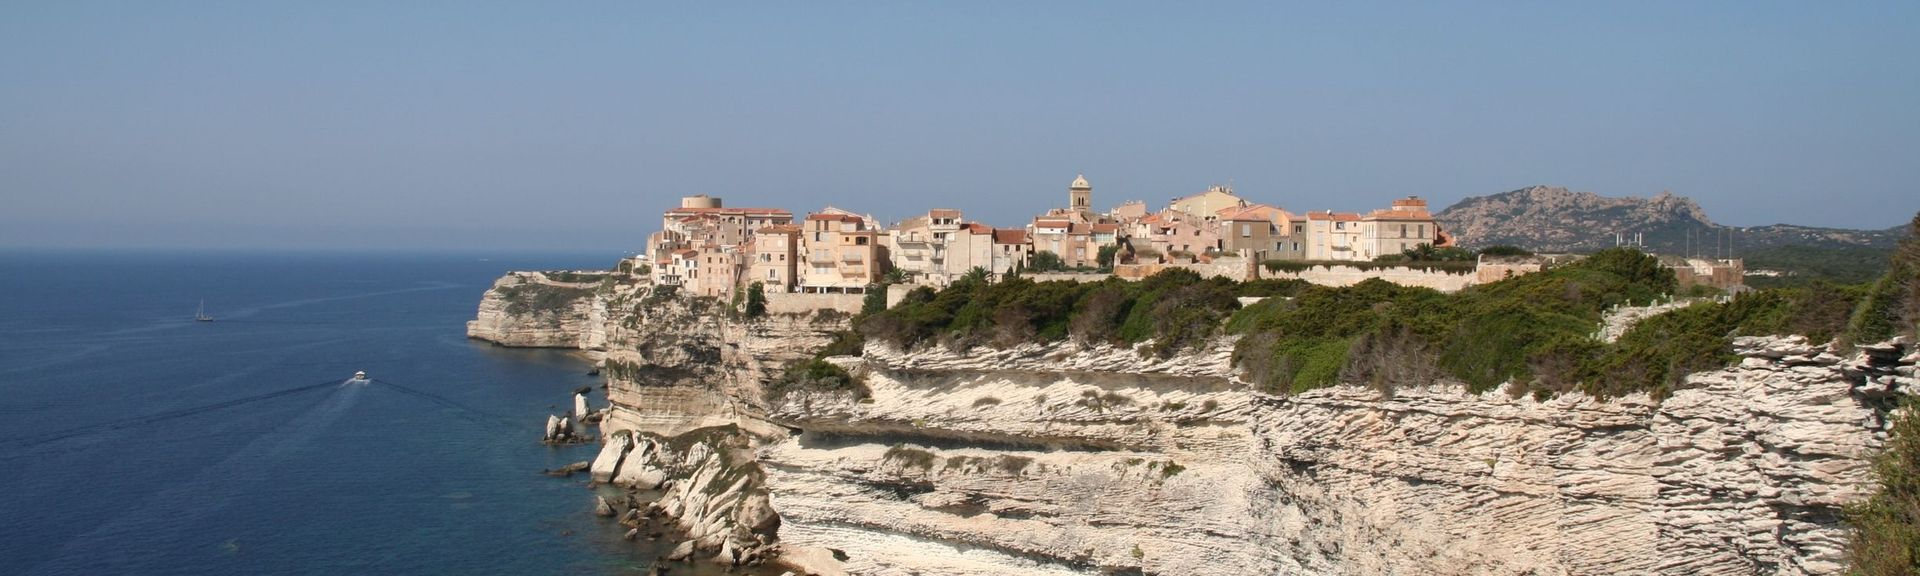 Sperone Golf Club, Bonifacio, France